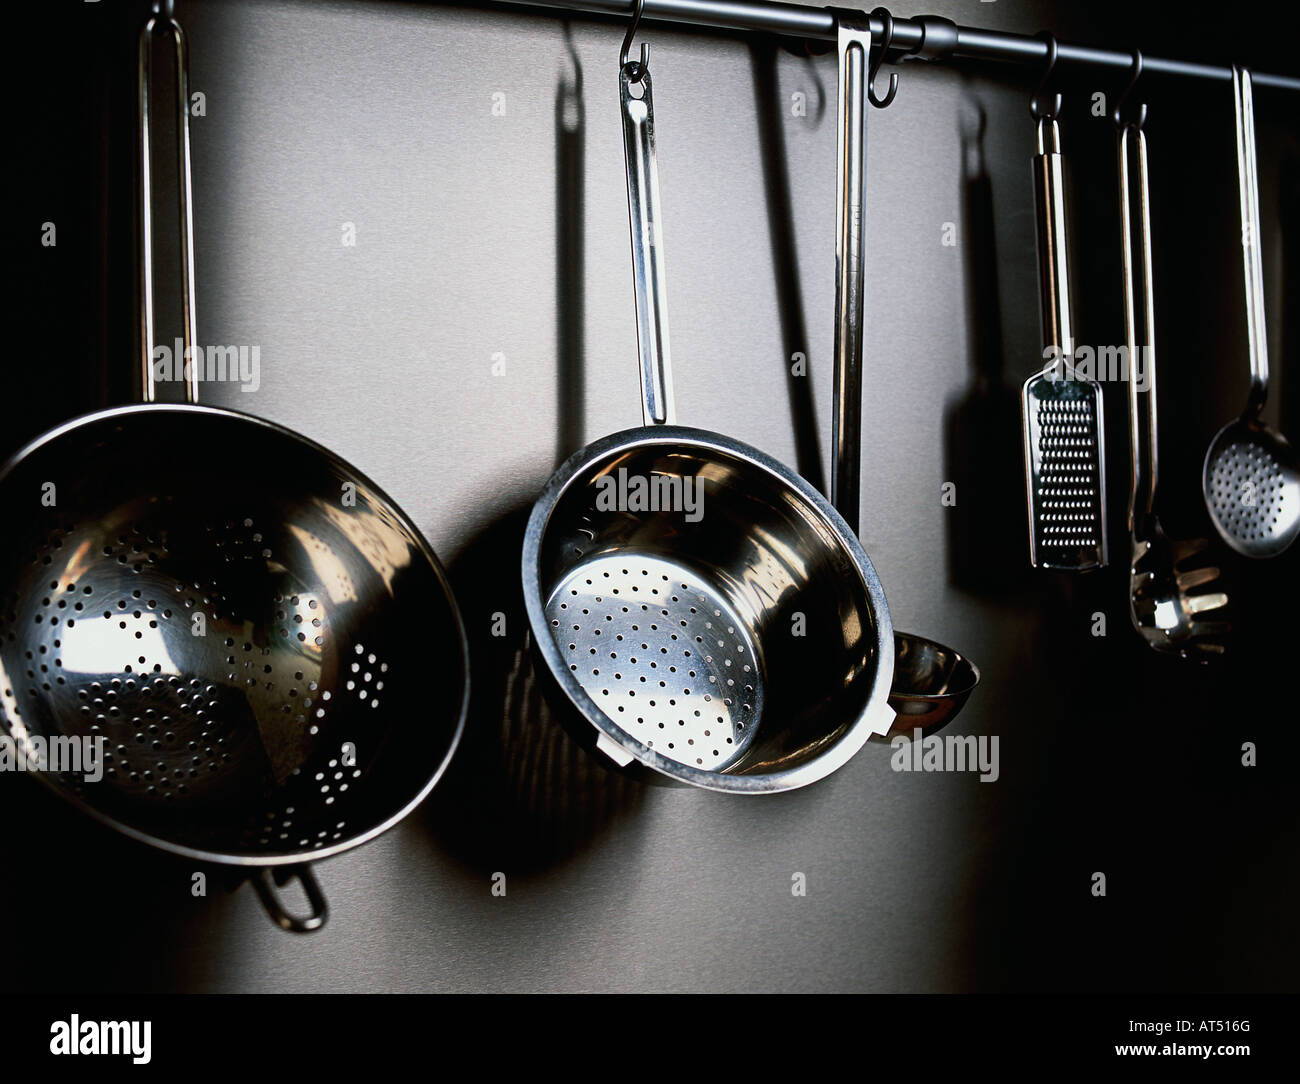 Pots Pans And Collinders Hanging Up In A Kitchen Stock